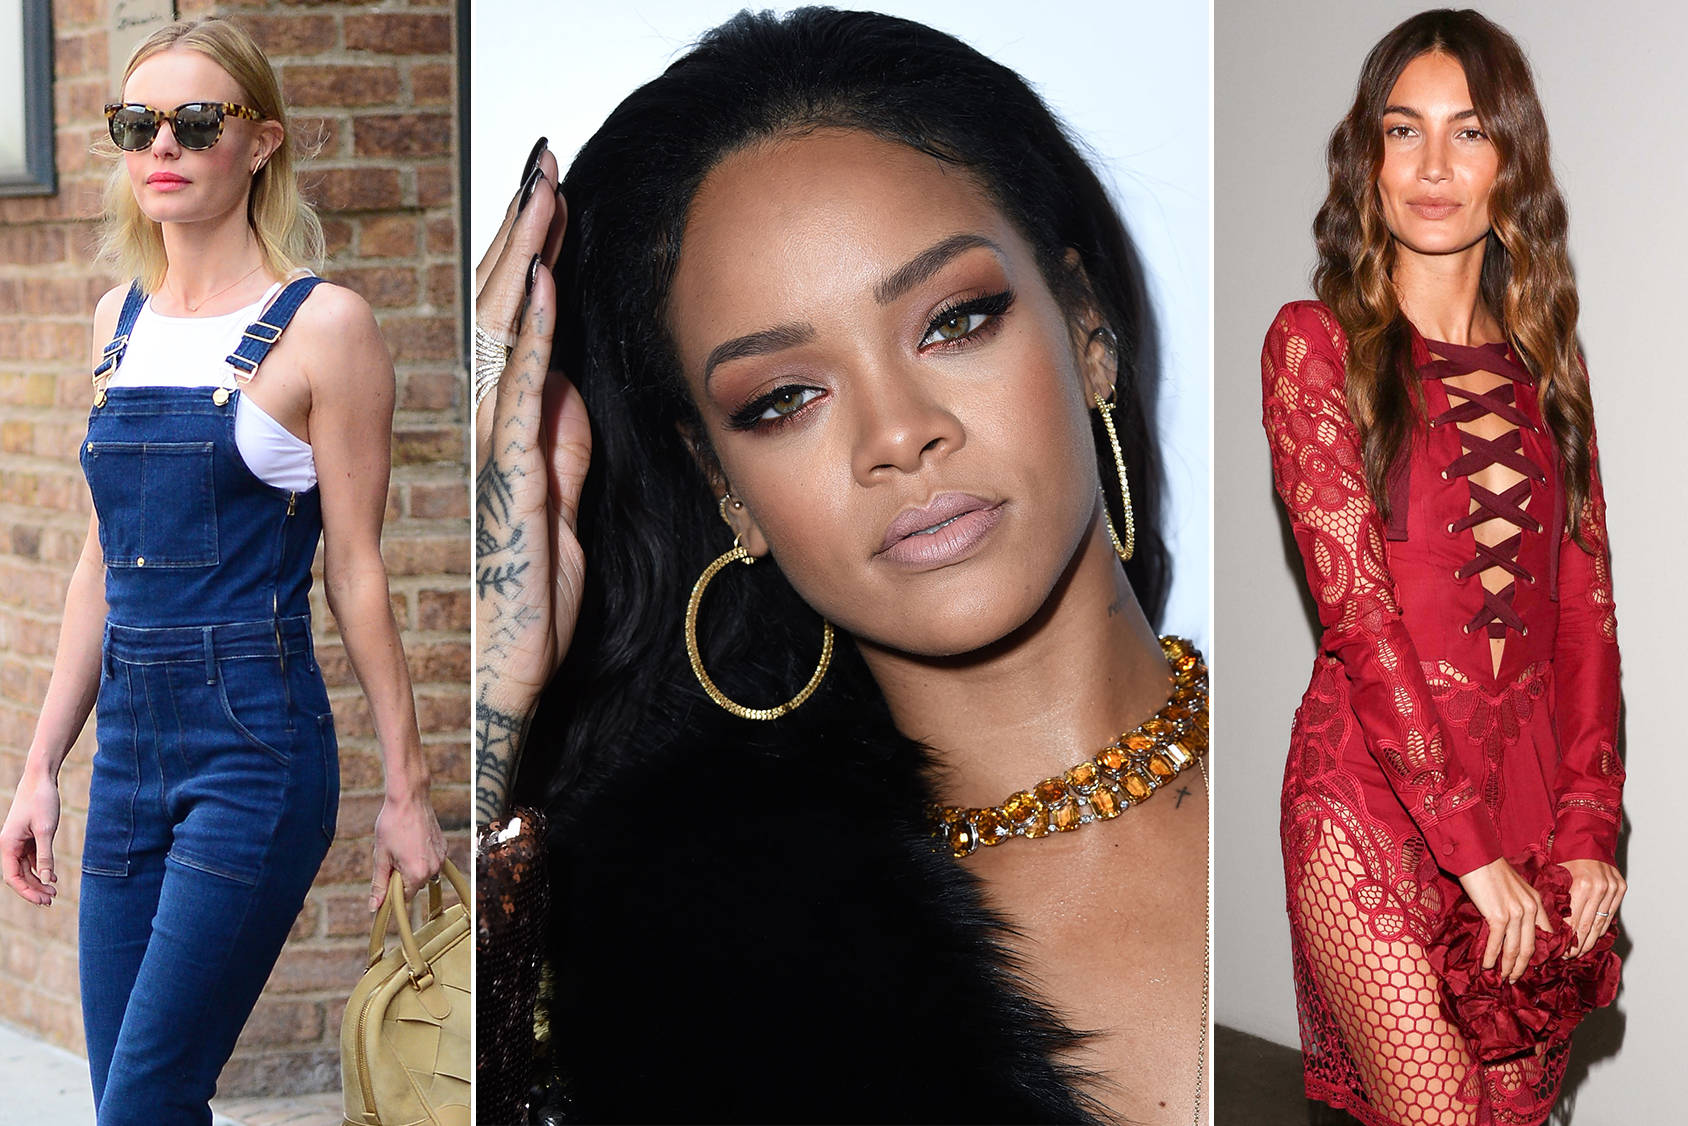 Cate Bosworth, Rihanna and Lily Aldridge sporting this year's big trends, Getty Images.